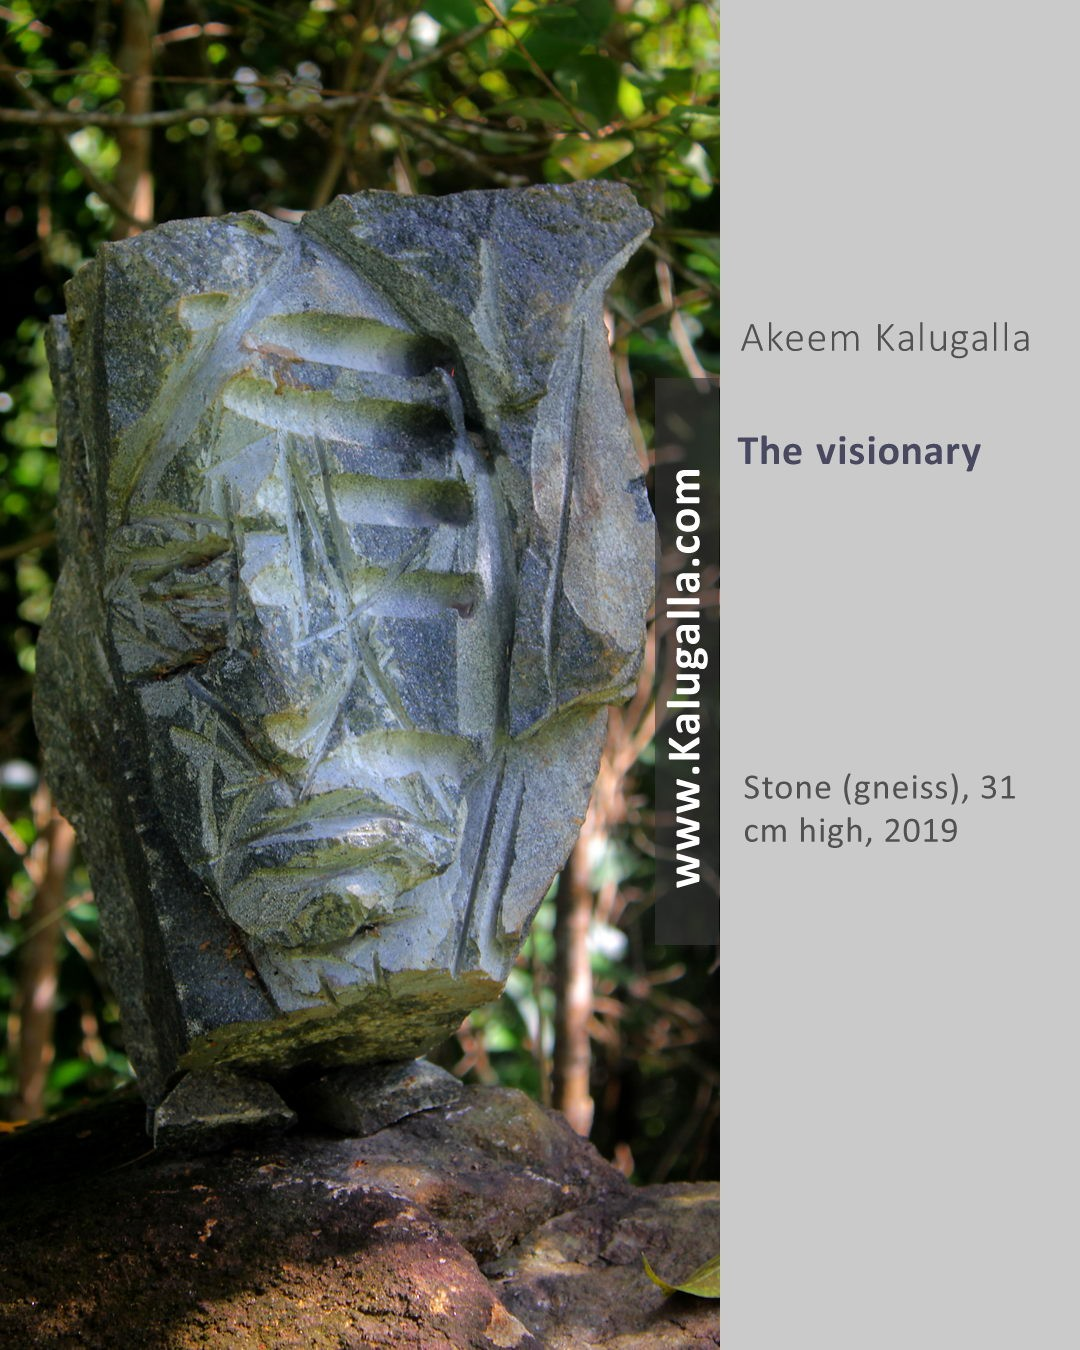 The Visionary by Akeem Kalugalla